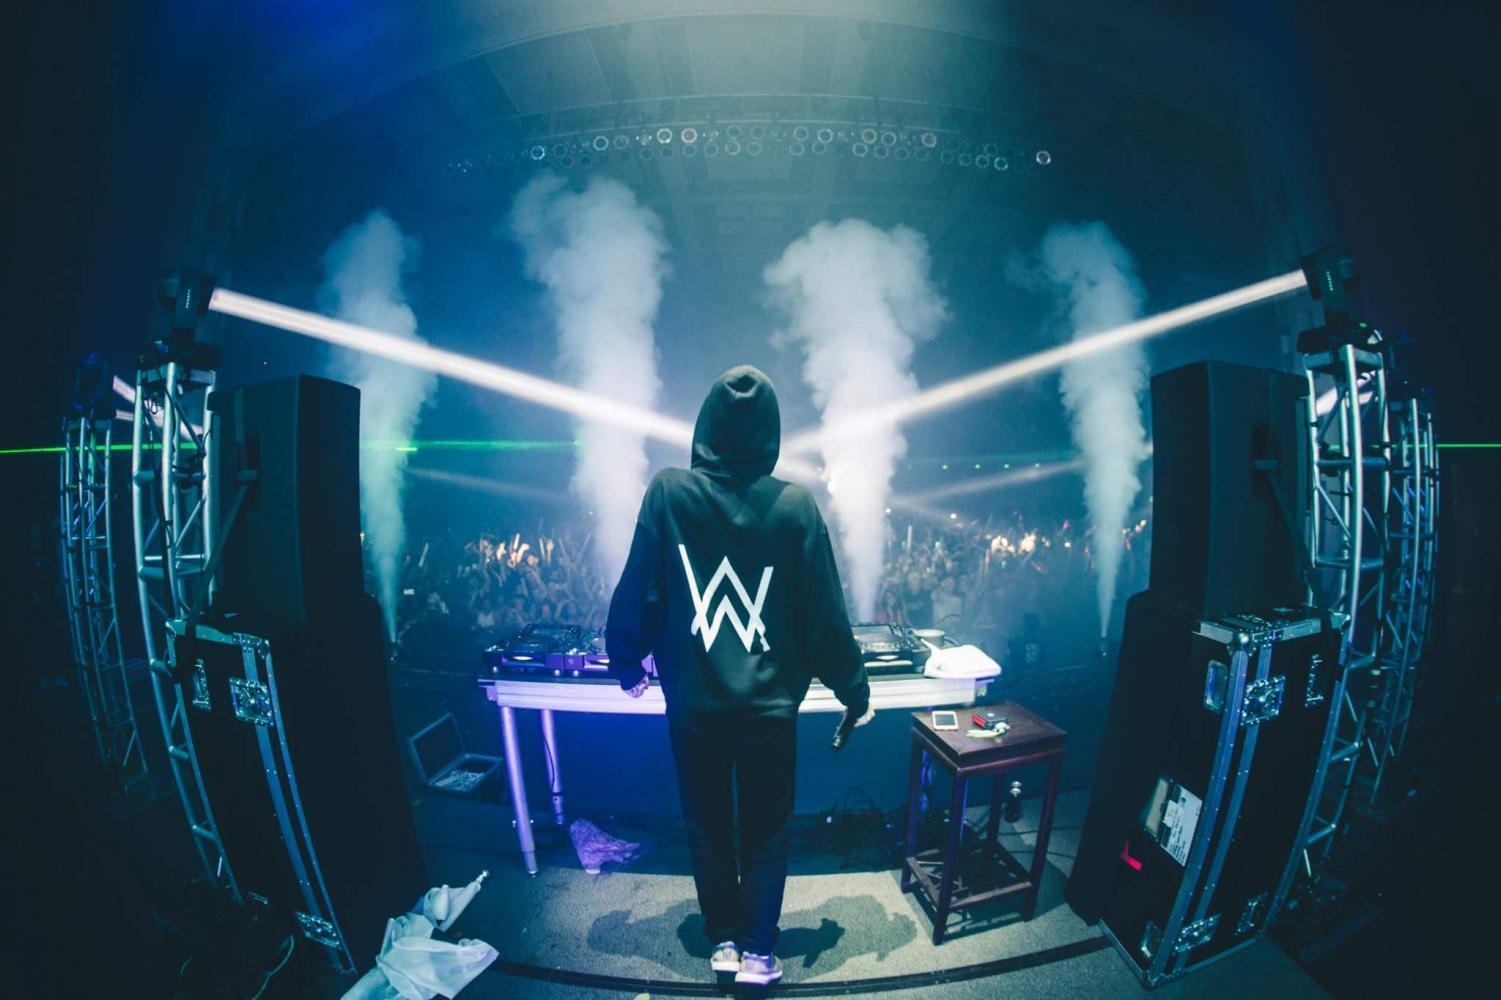 The Monster Energy Up & Up College Festival concert on Oct. 26, 2017, featuring Alan Walker, is held at the City National Civic building in San Jose. The event was hosted by the students of San Jose State University.